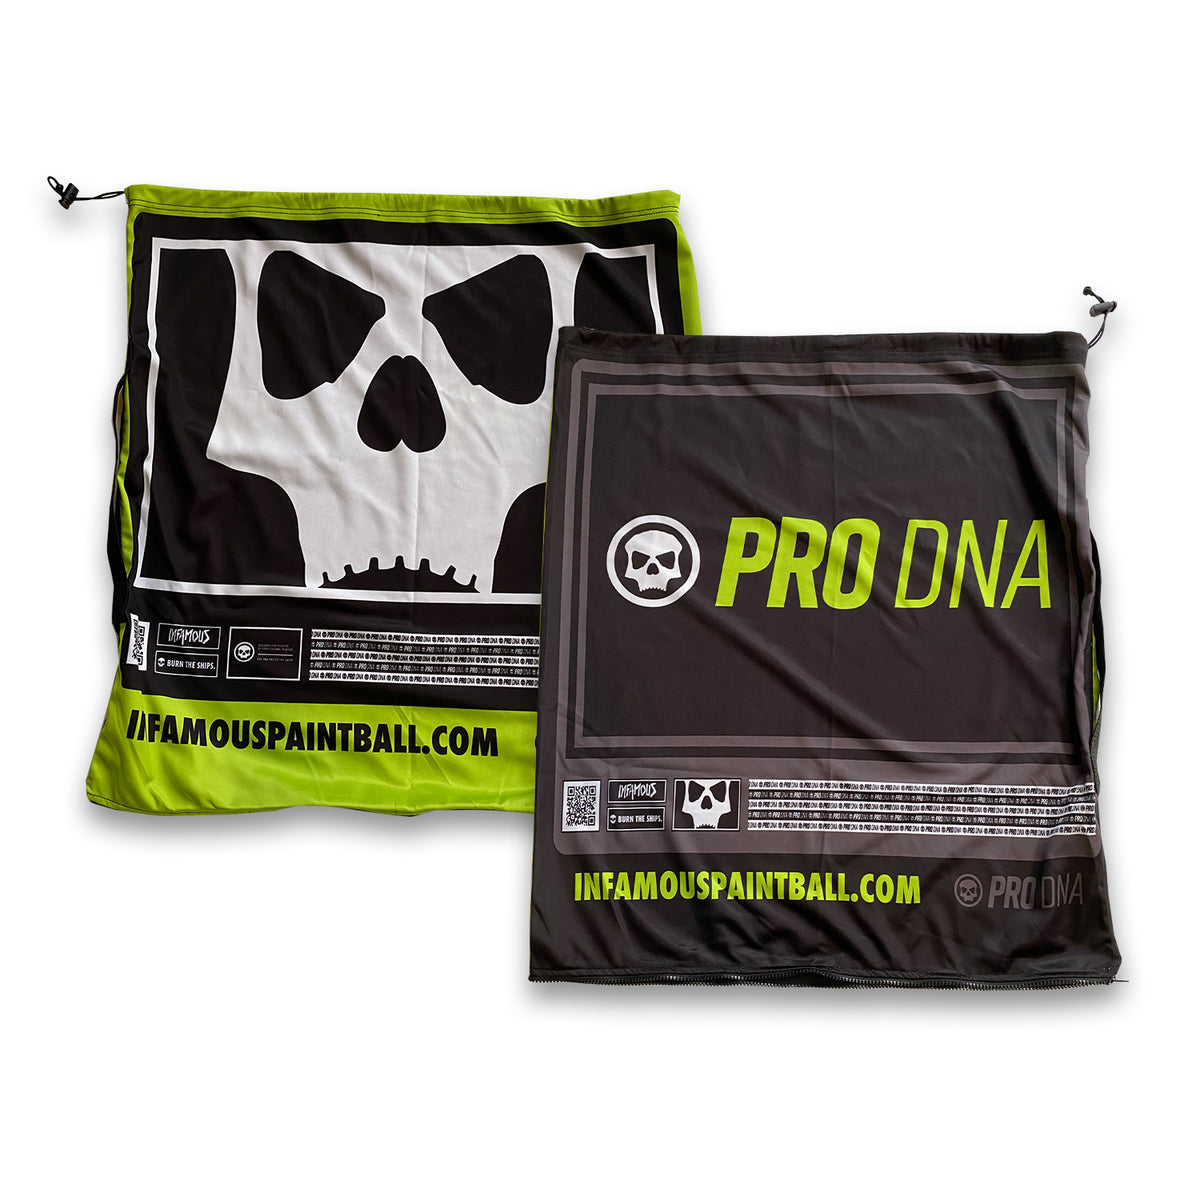 Pro DNA Pod / Changing Gear Bag